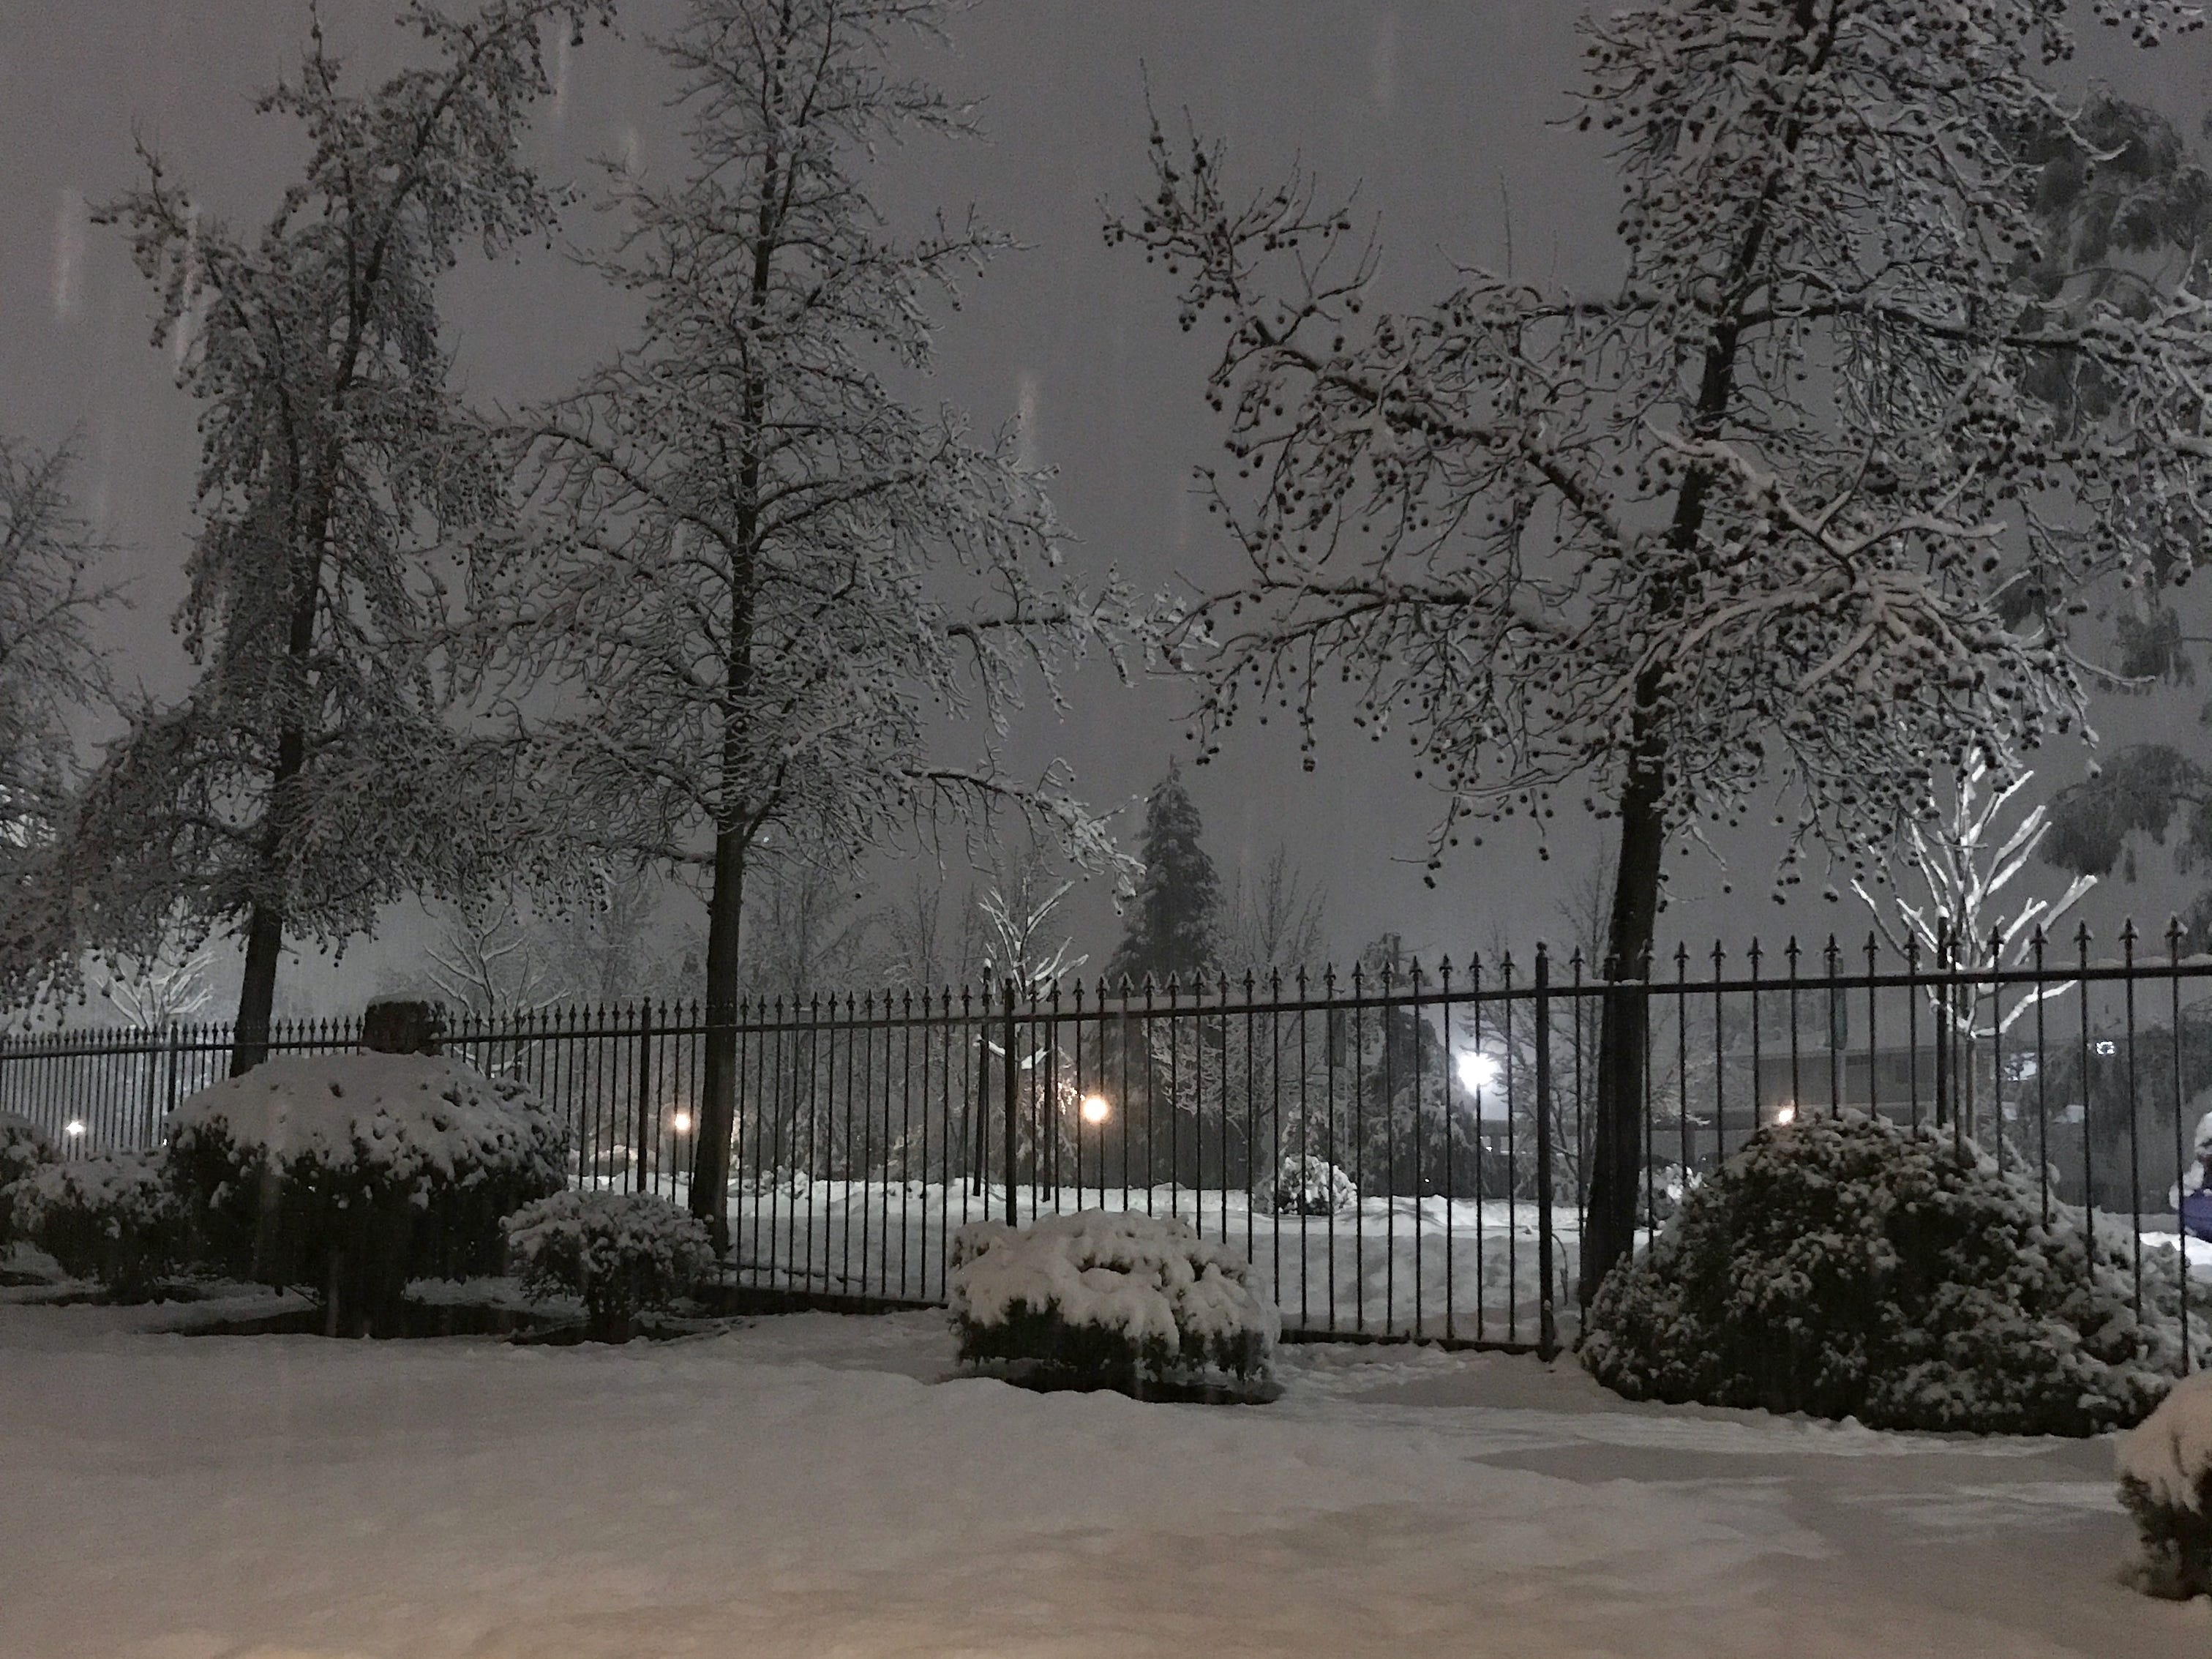 Snow falls on Wednesday, Feb. 13, 2019 in north Redding.